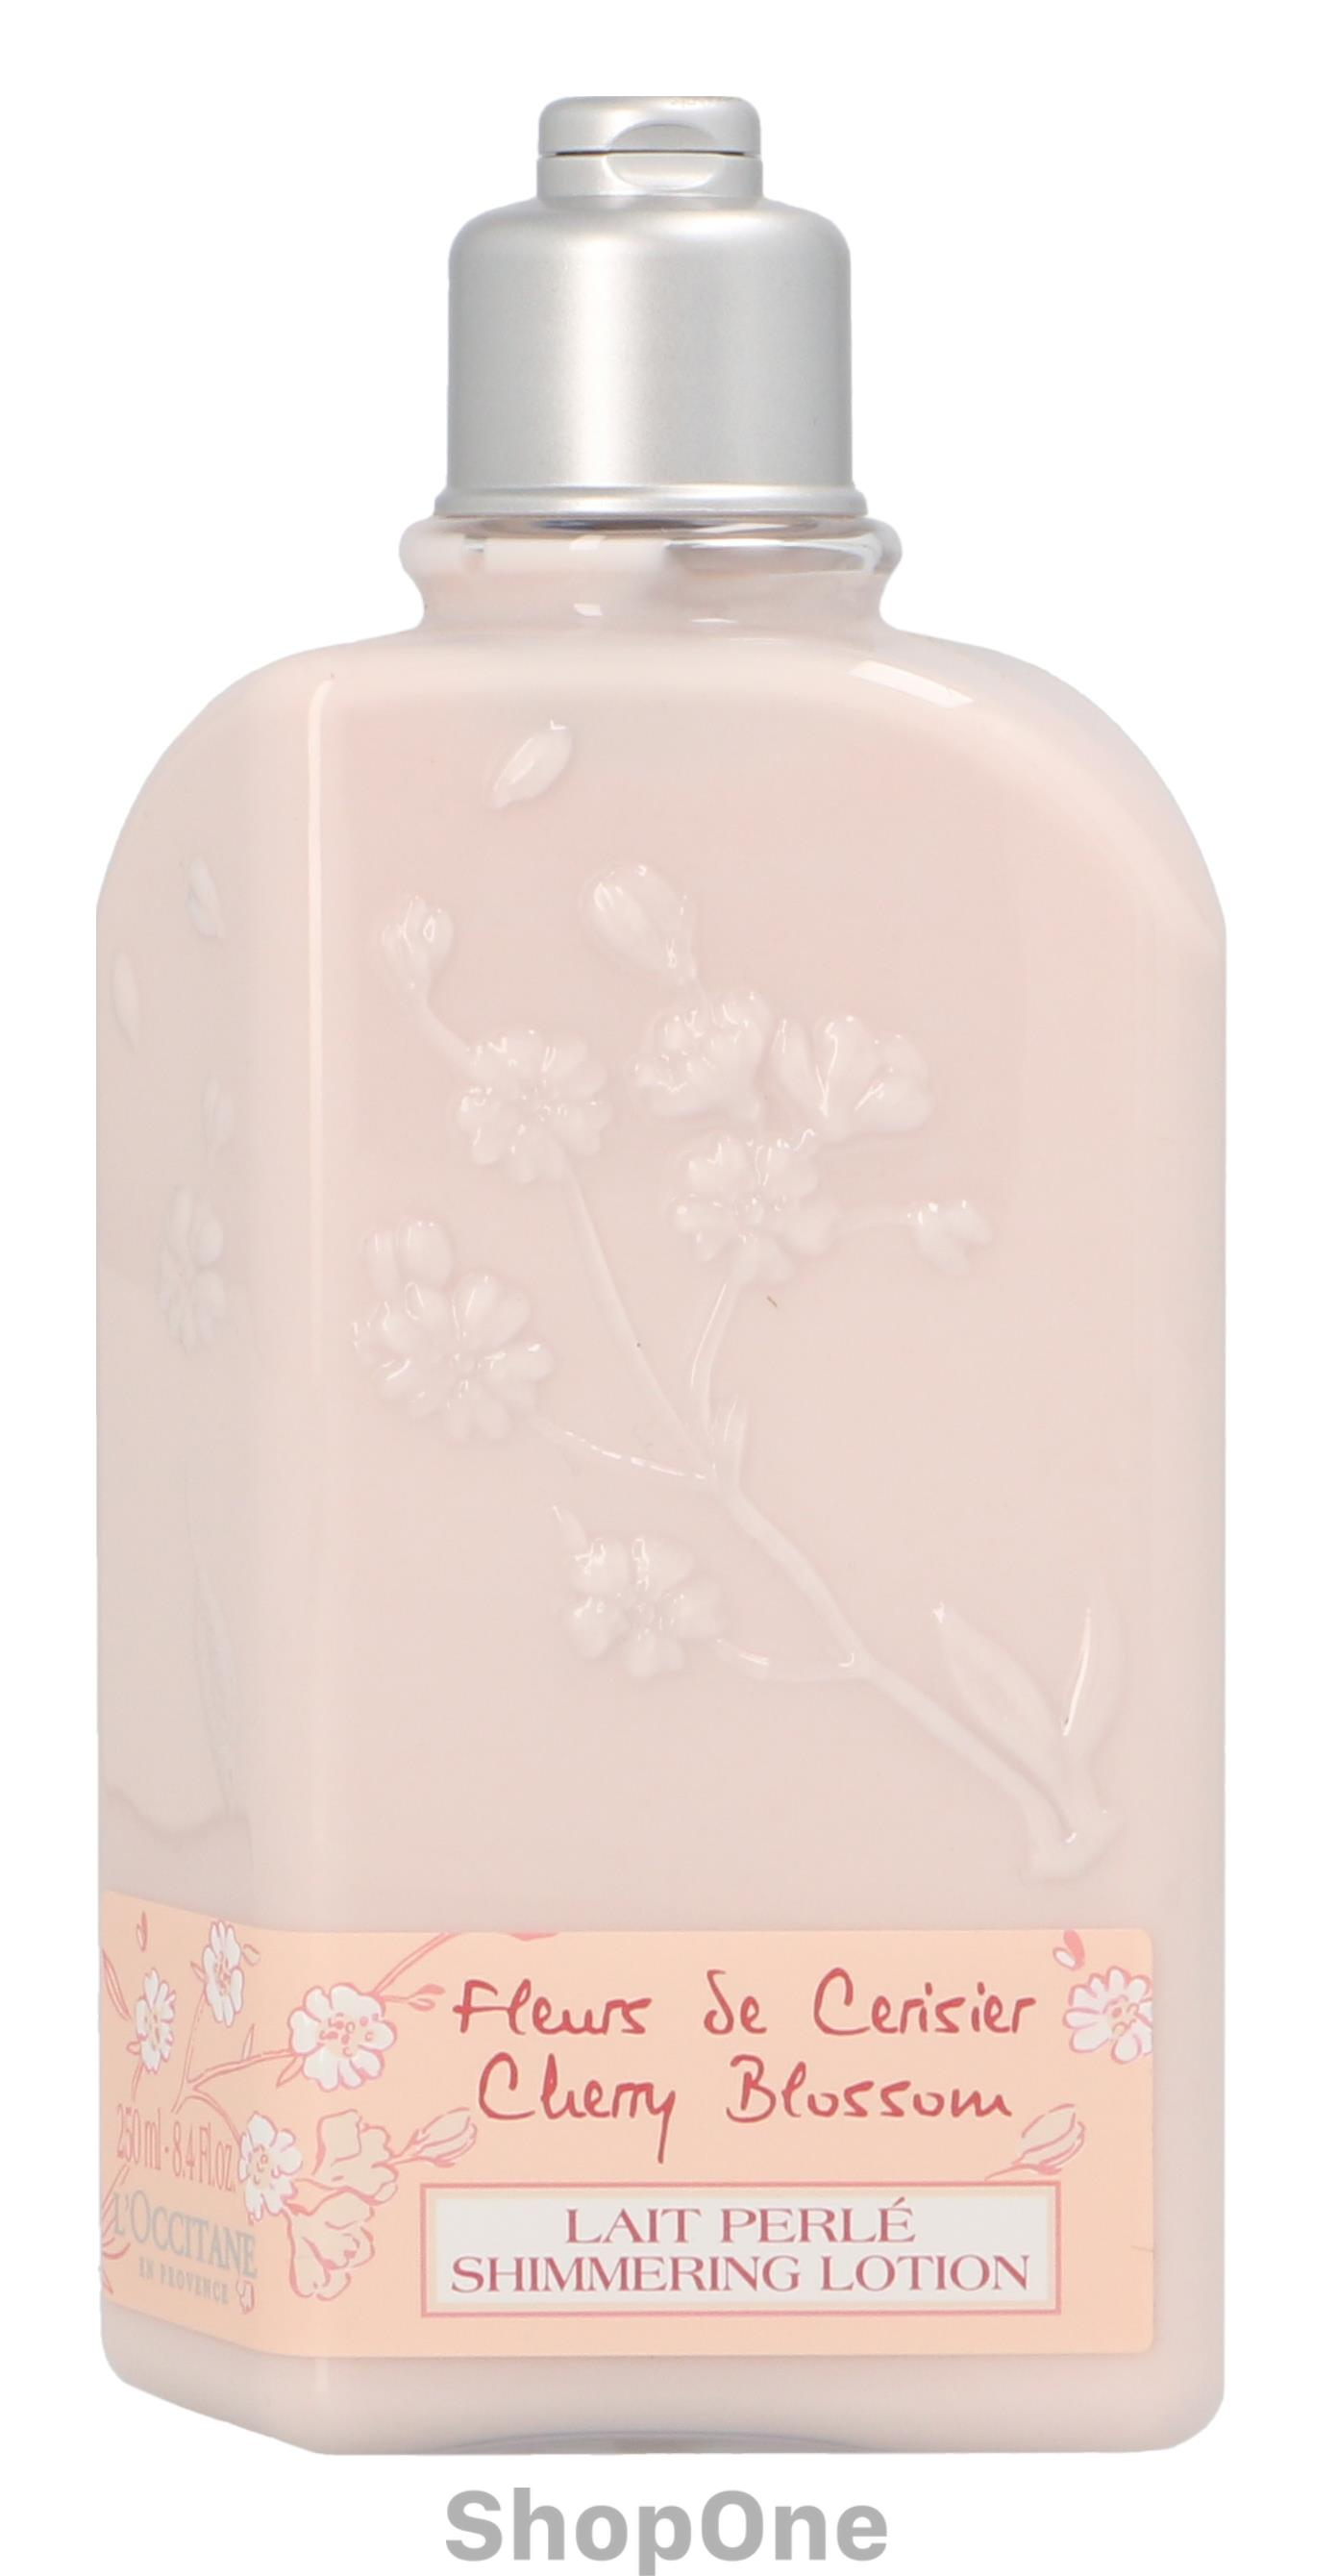 Image of   Cherry Blossom Shimmering Lotion 250 ml fra LOccitane